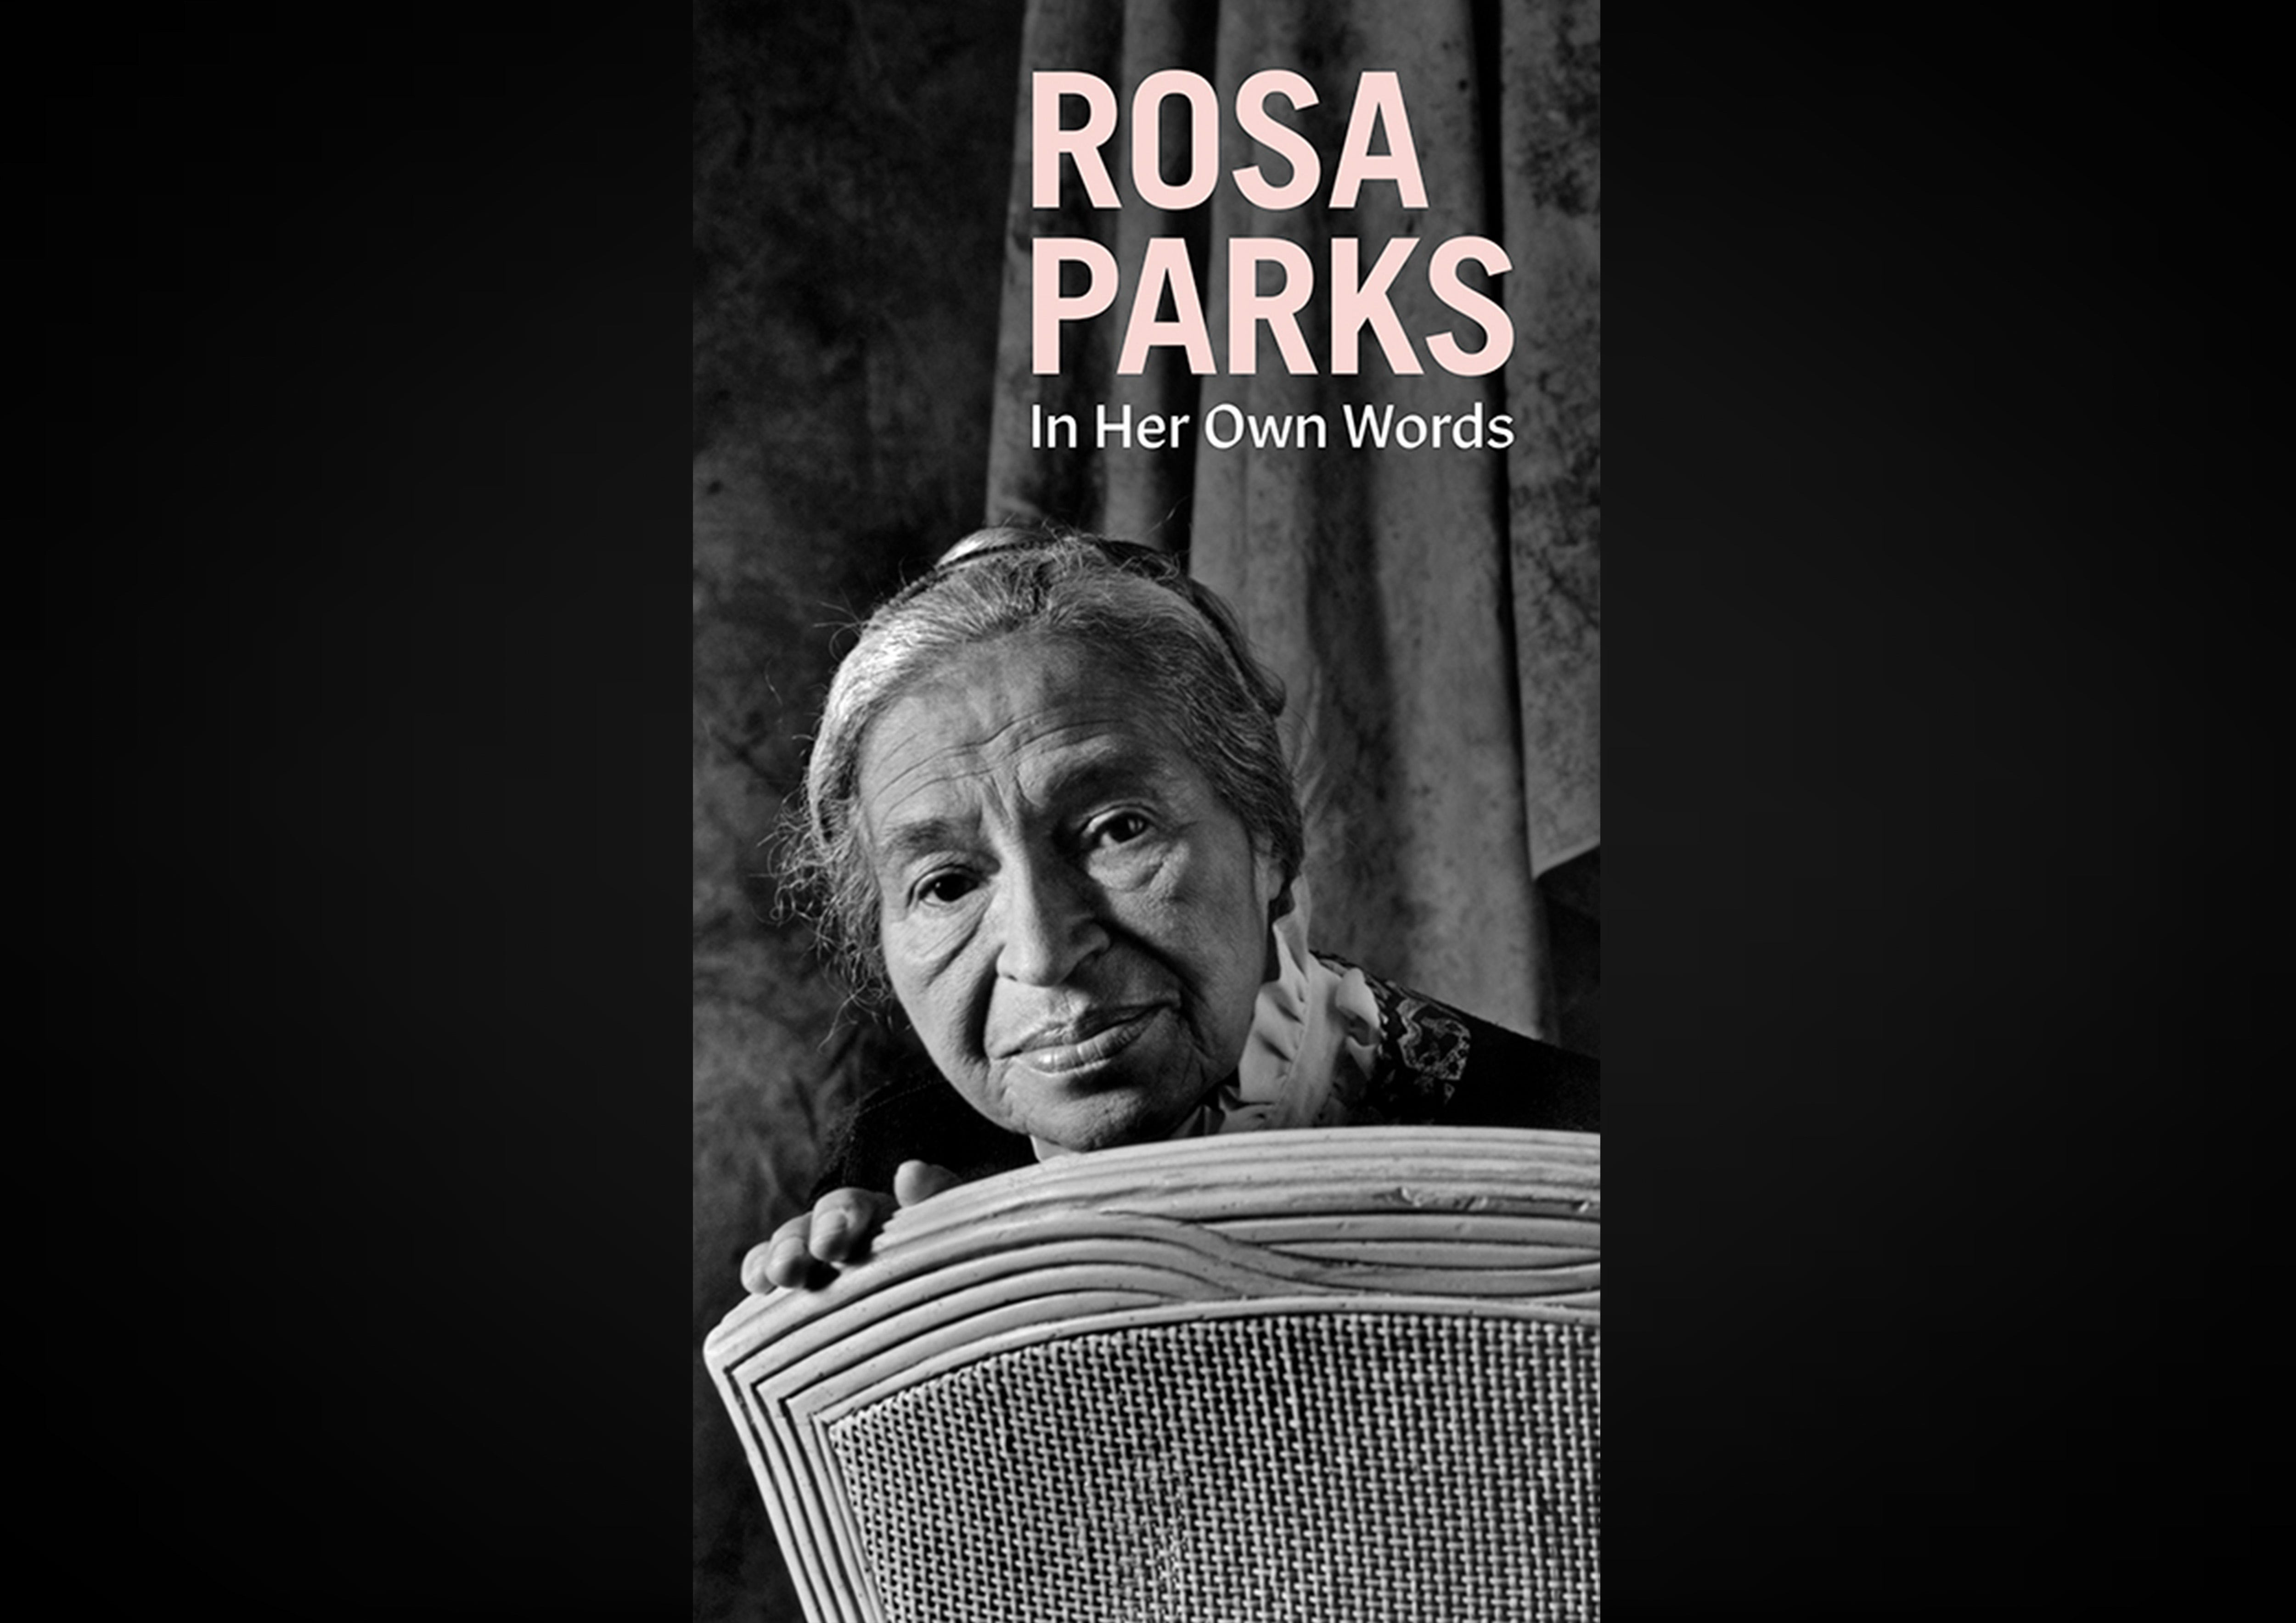 Rosa Parks Library Of Congress Exhibit Tells Her Story Wpgc